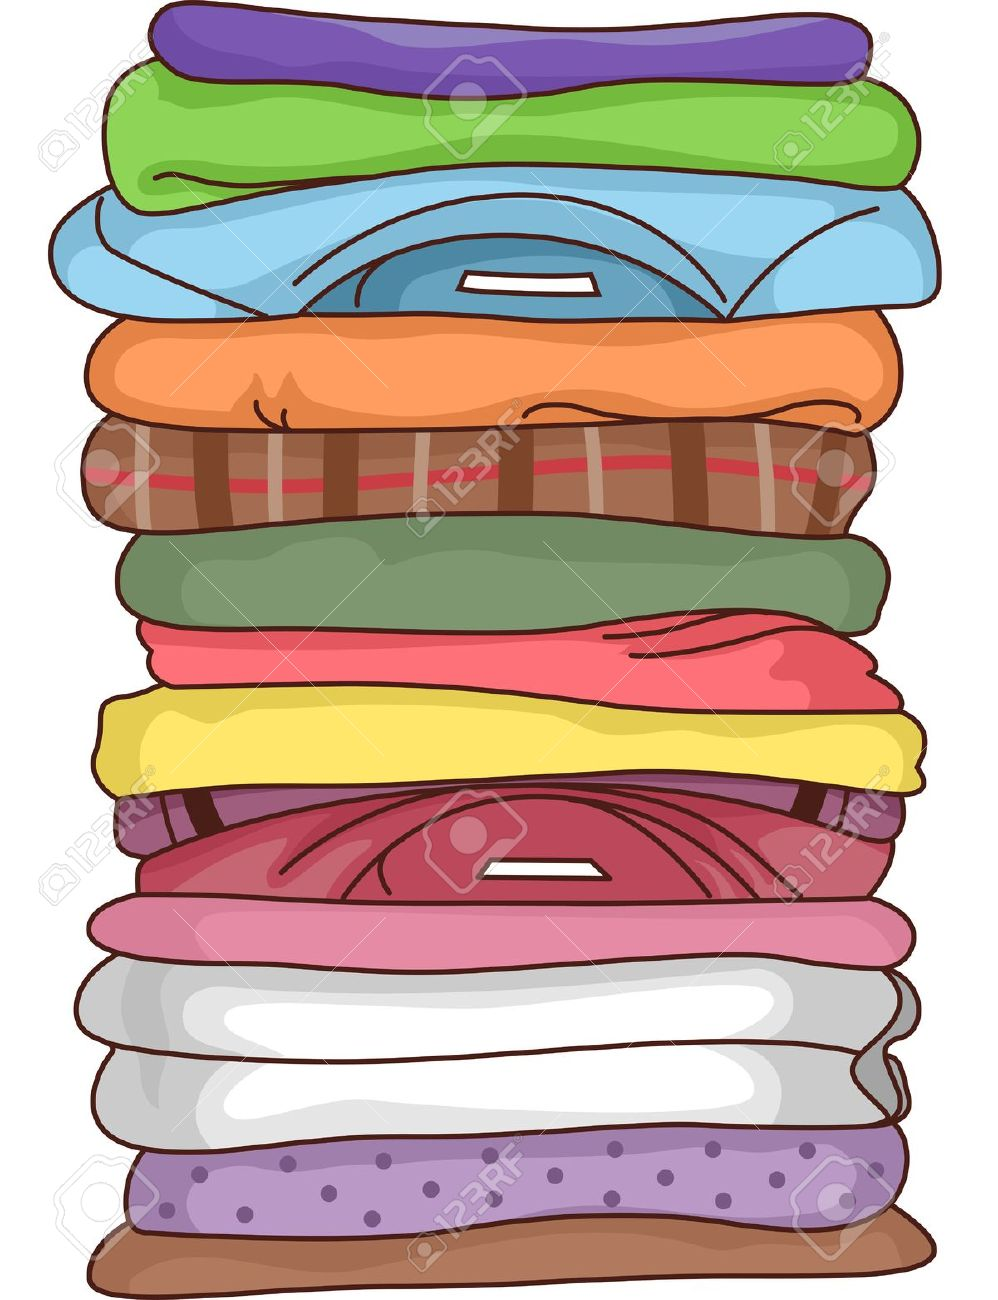 Shirts clipart stack, Shirts stack Transparent FREE for.